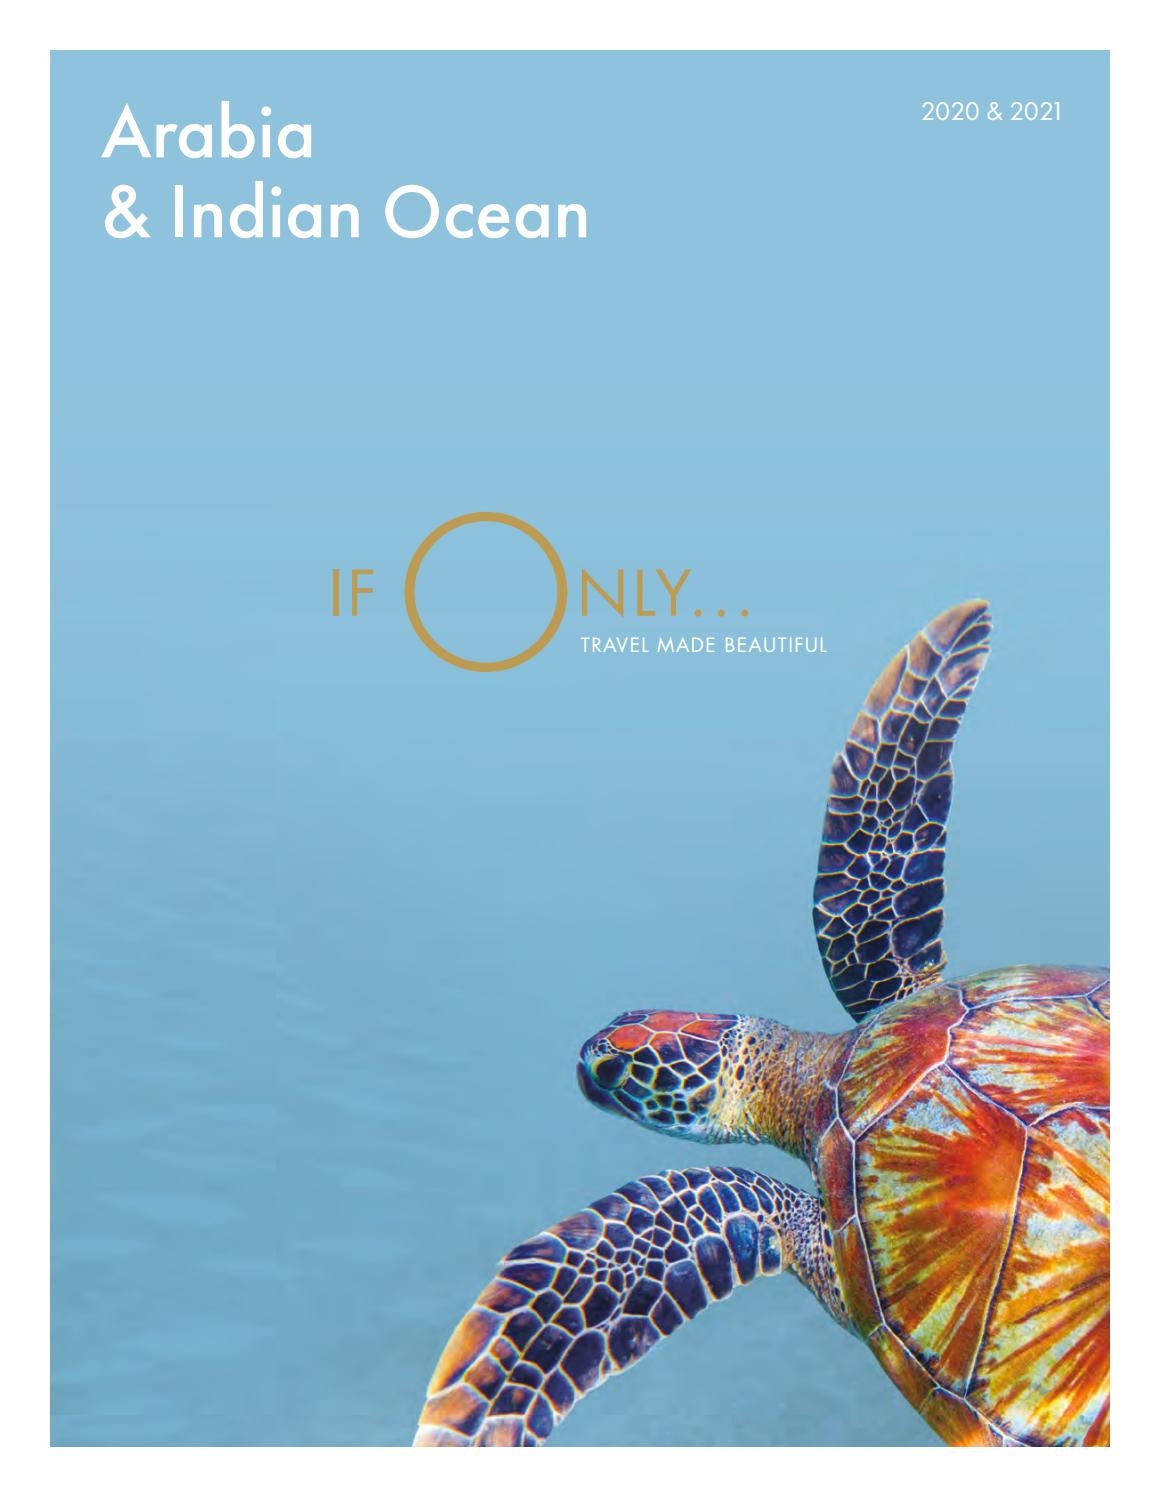 If Only Arabia Indian Ocean Brochure By Travel Designers Issuu